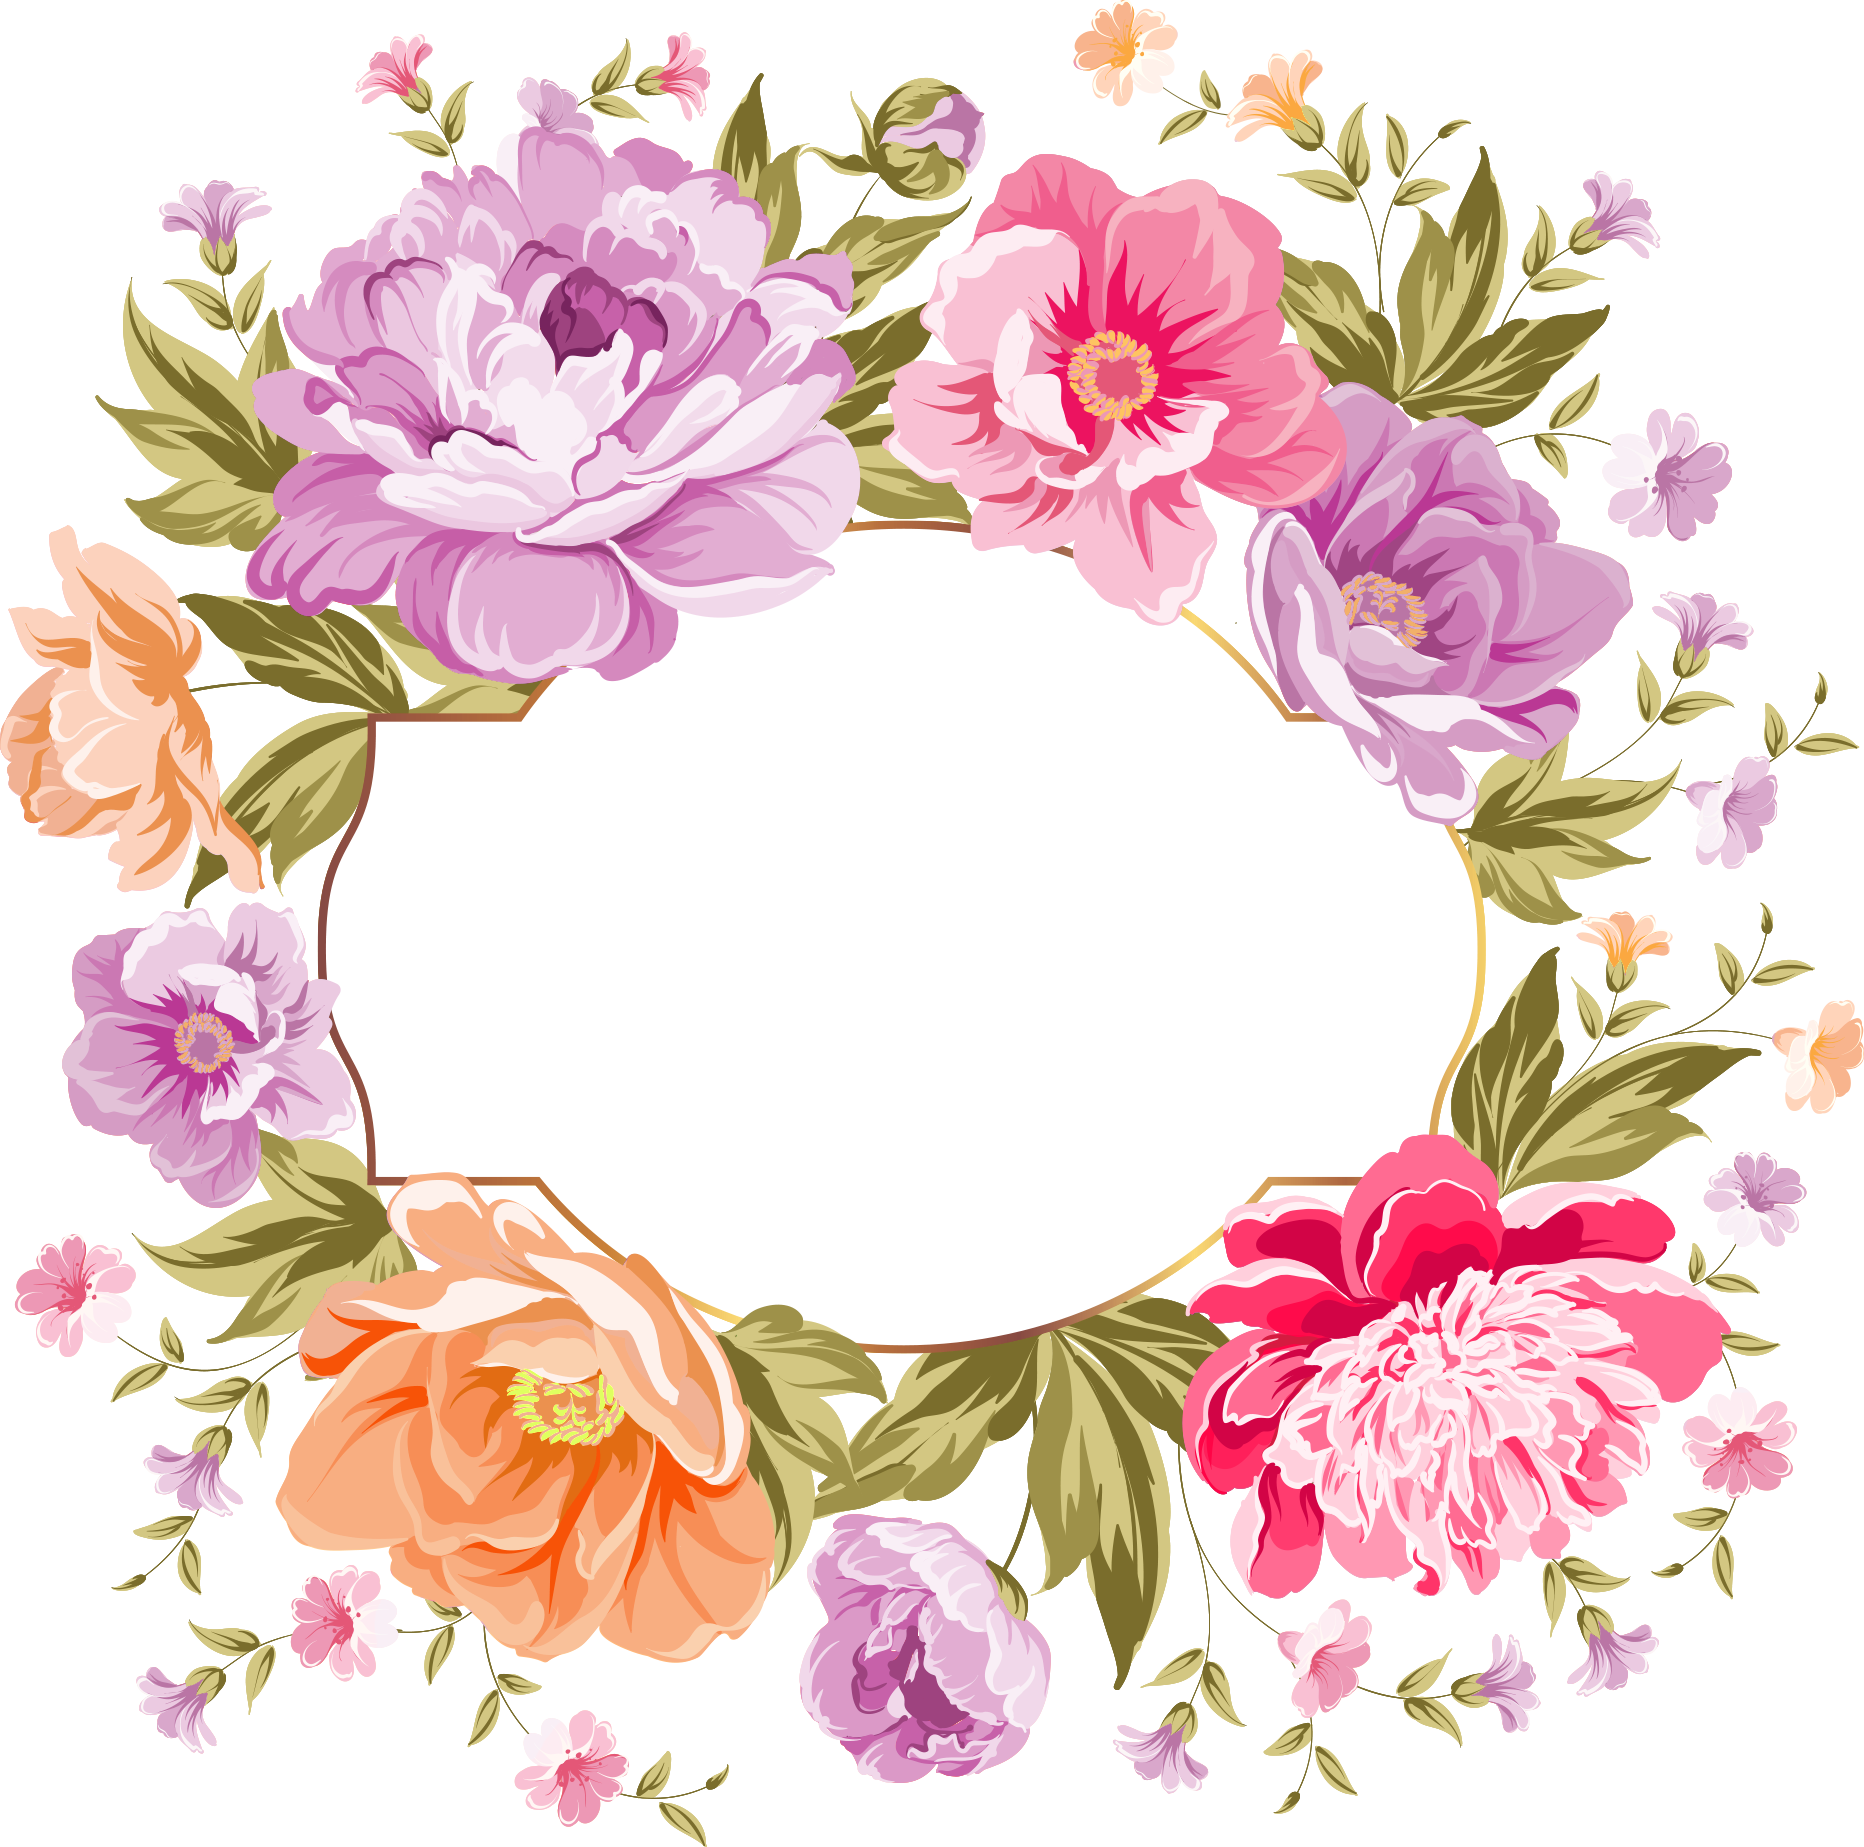 Http d top net. Watercolor flower wreath png png freeuse